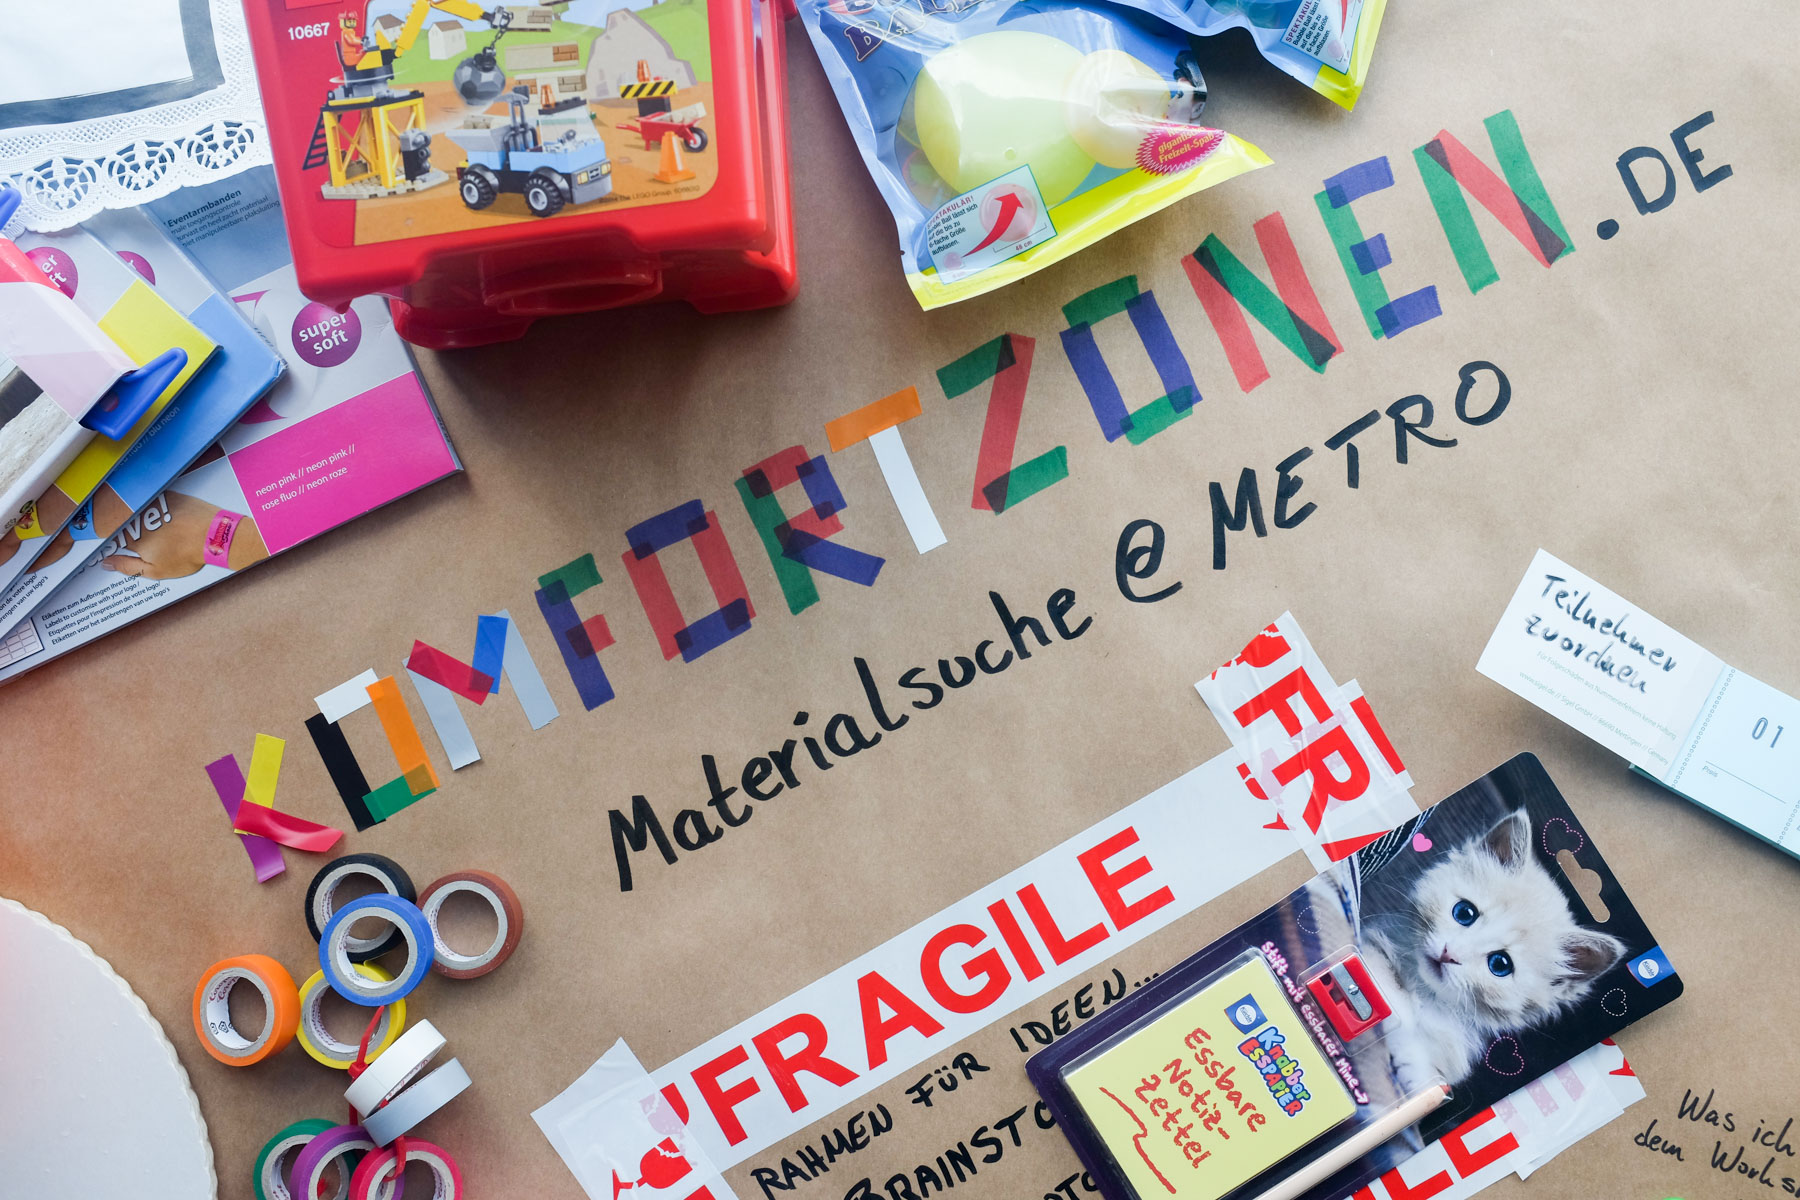 workshop-material-metro